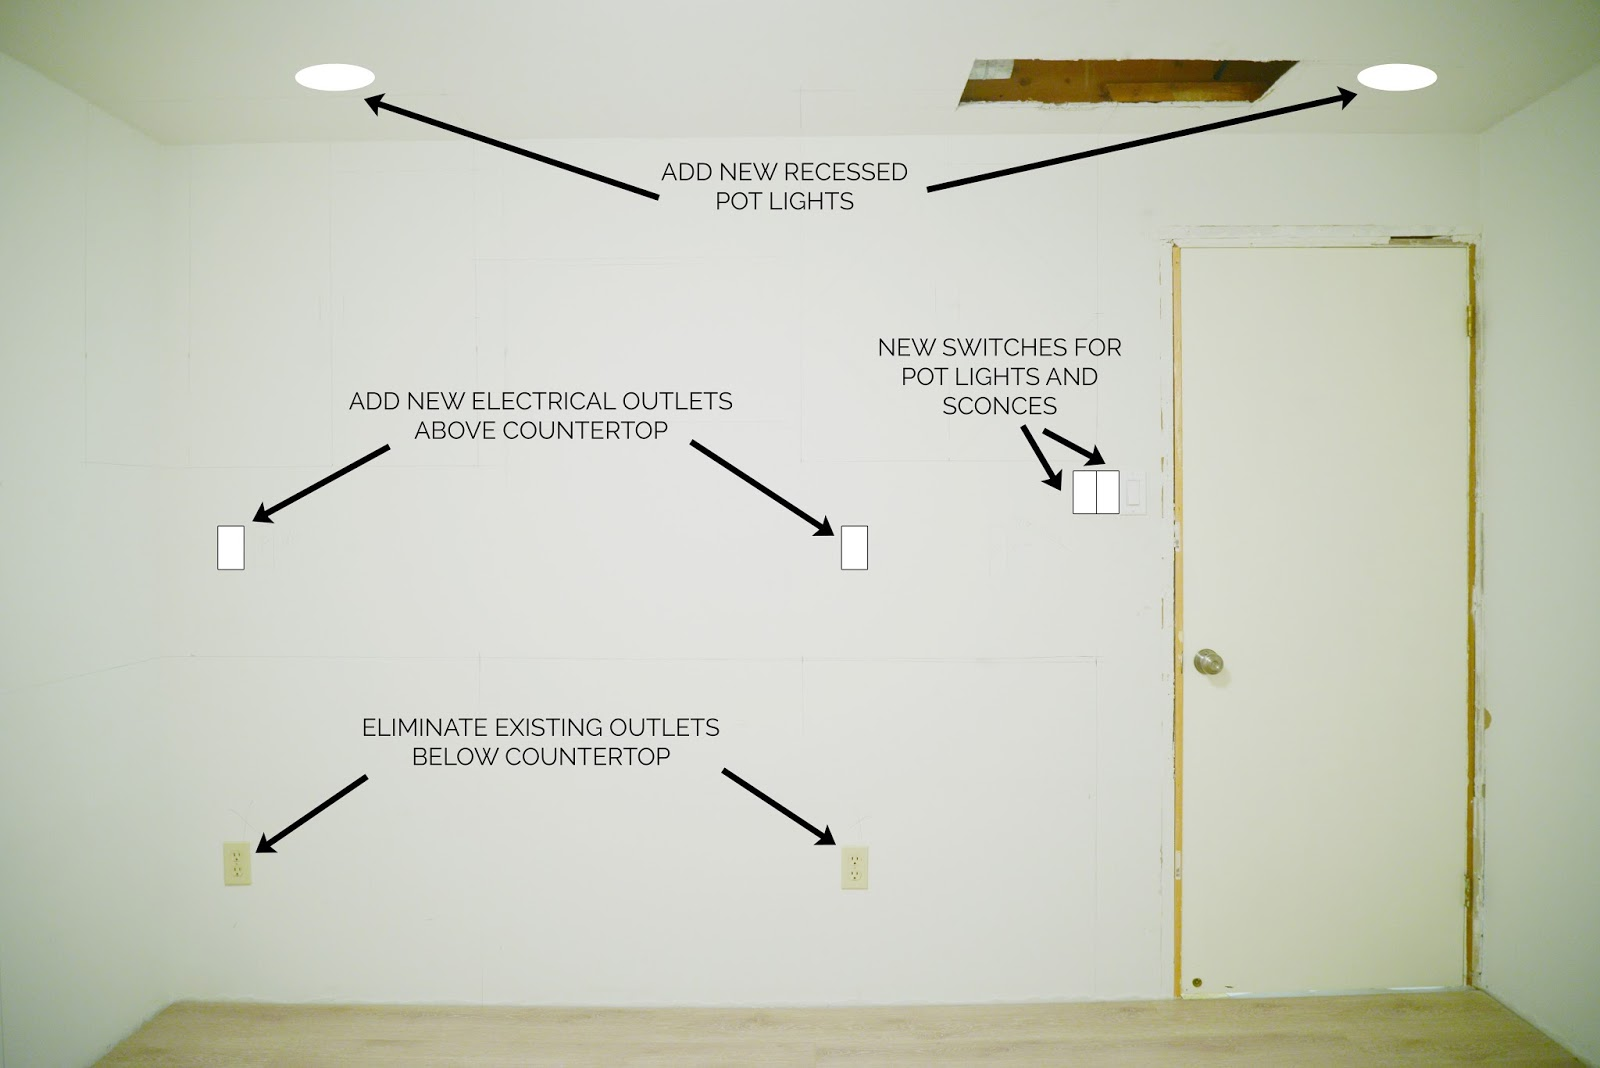 craft room electrical plan considerations ramblingrenovators ca projectcraftsdept [ 1600 x 1068 Pixel ]